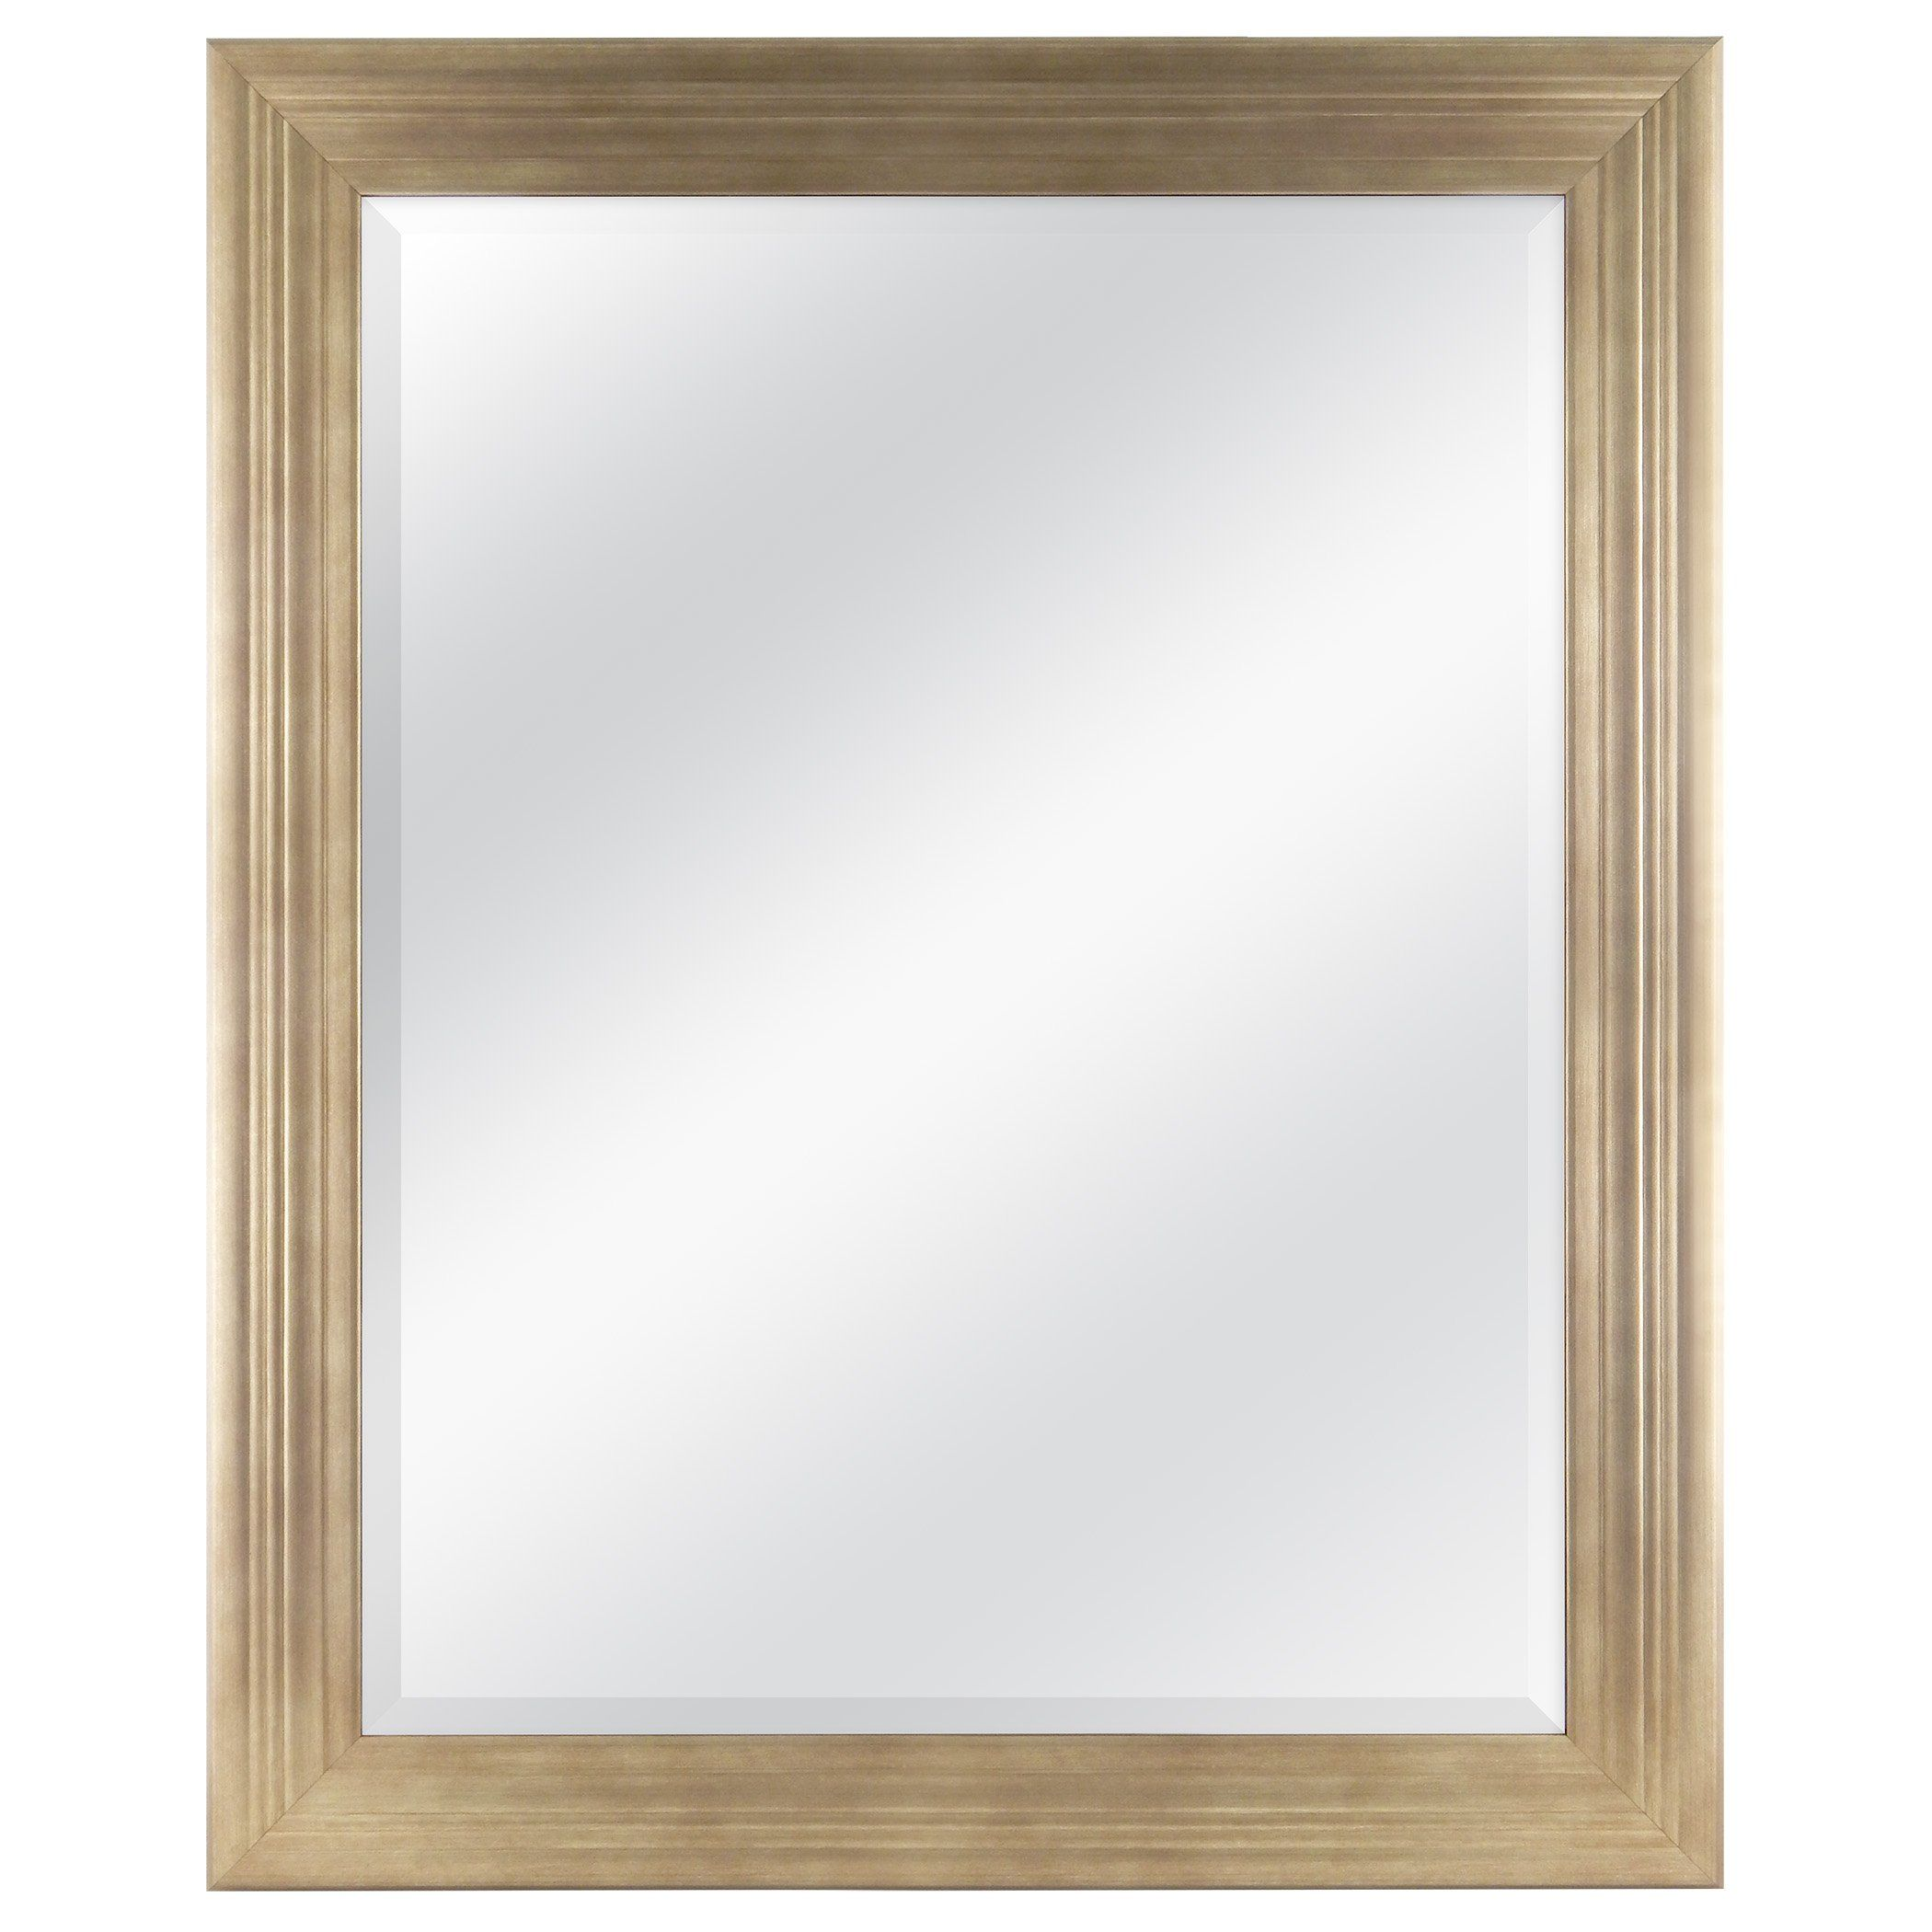 MCS 27x33 Inch Ridged Frame with 22x28 mirror, Brushed Gold (20584 ...